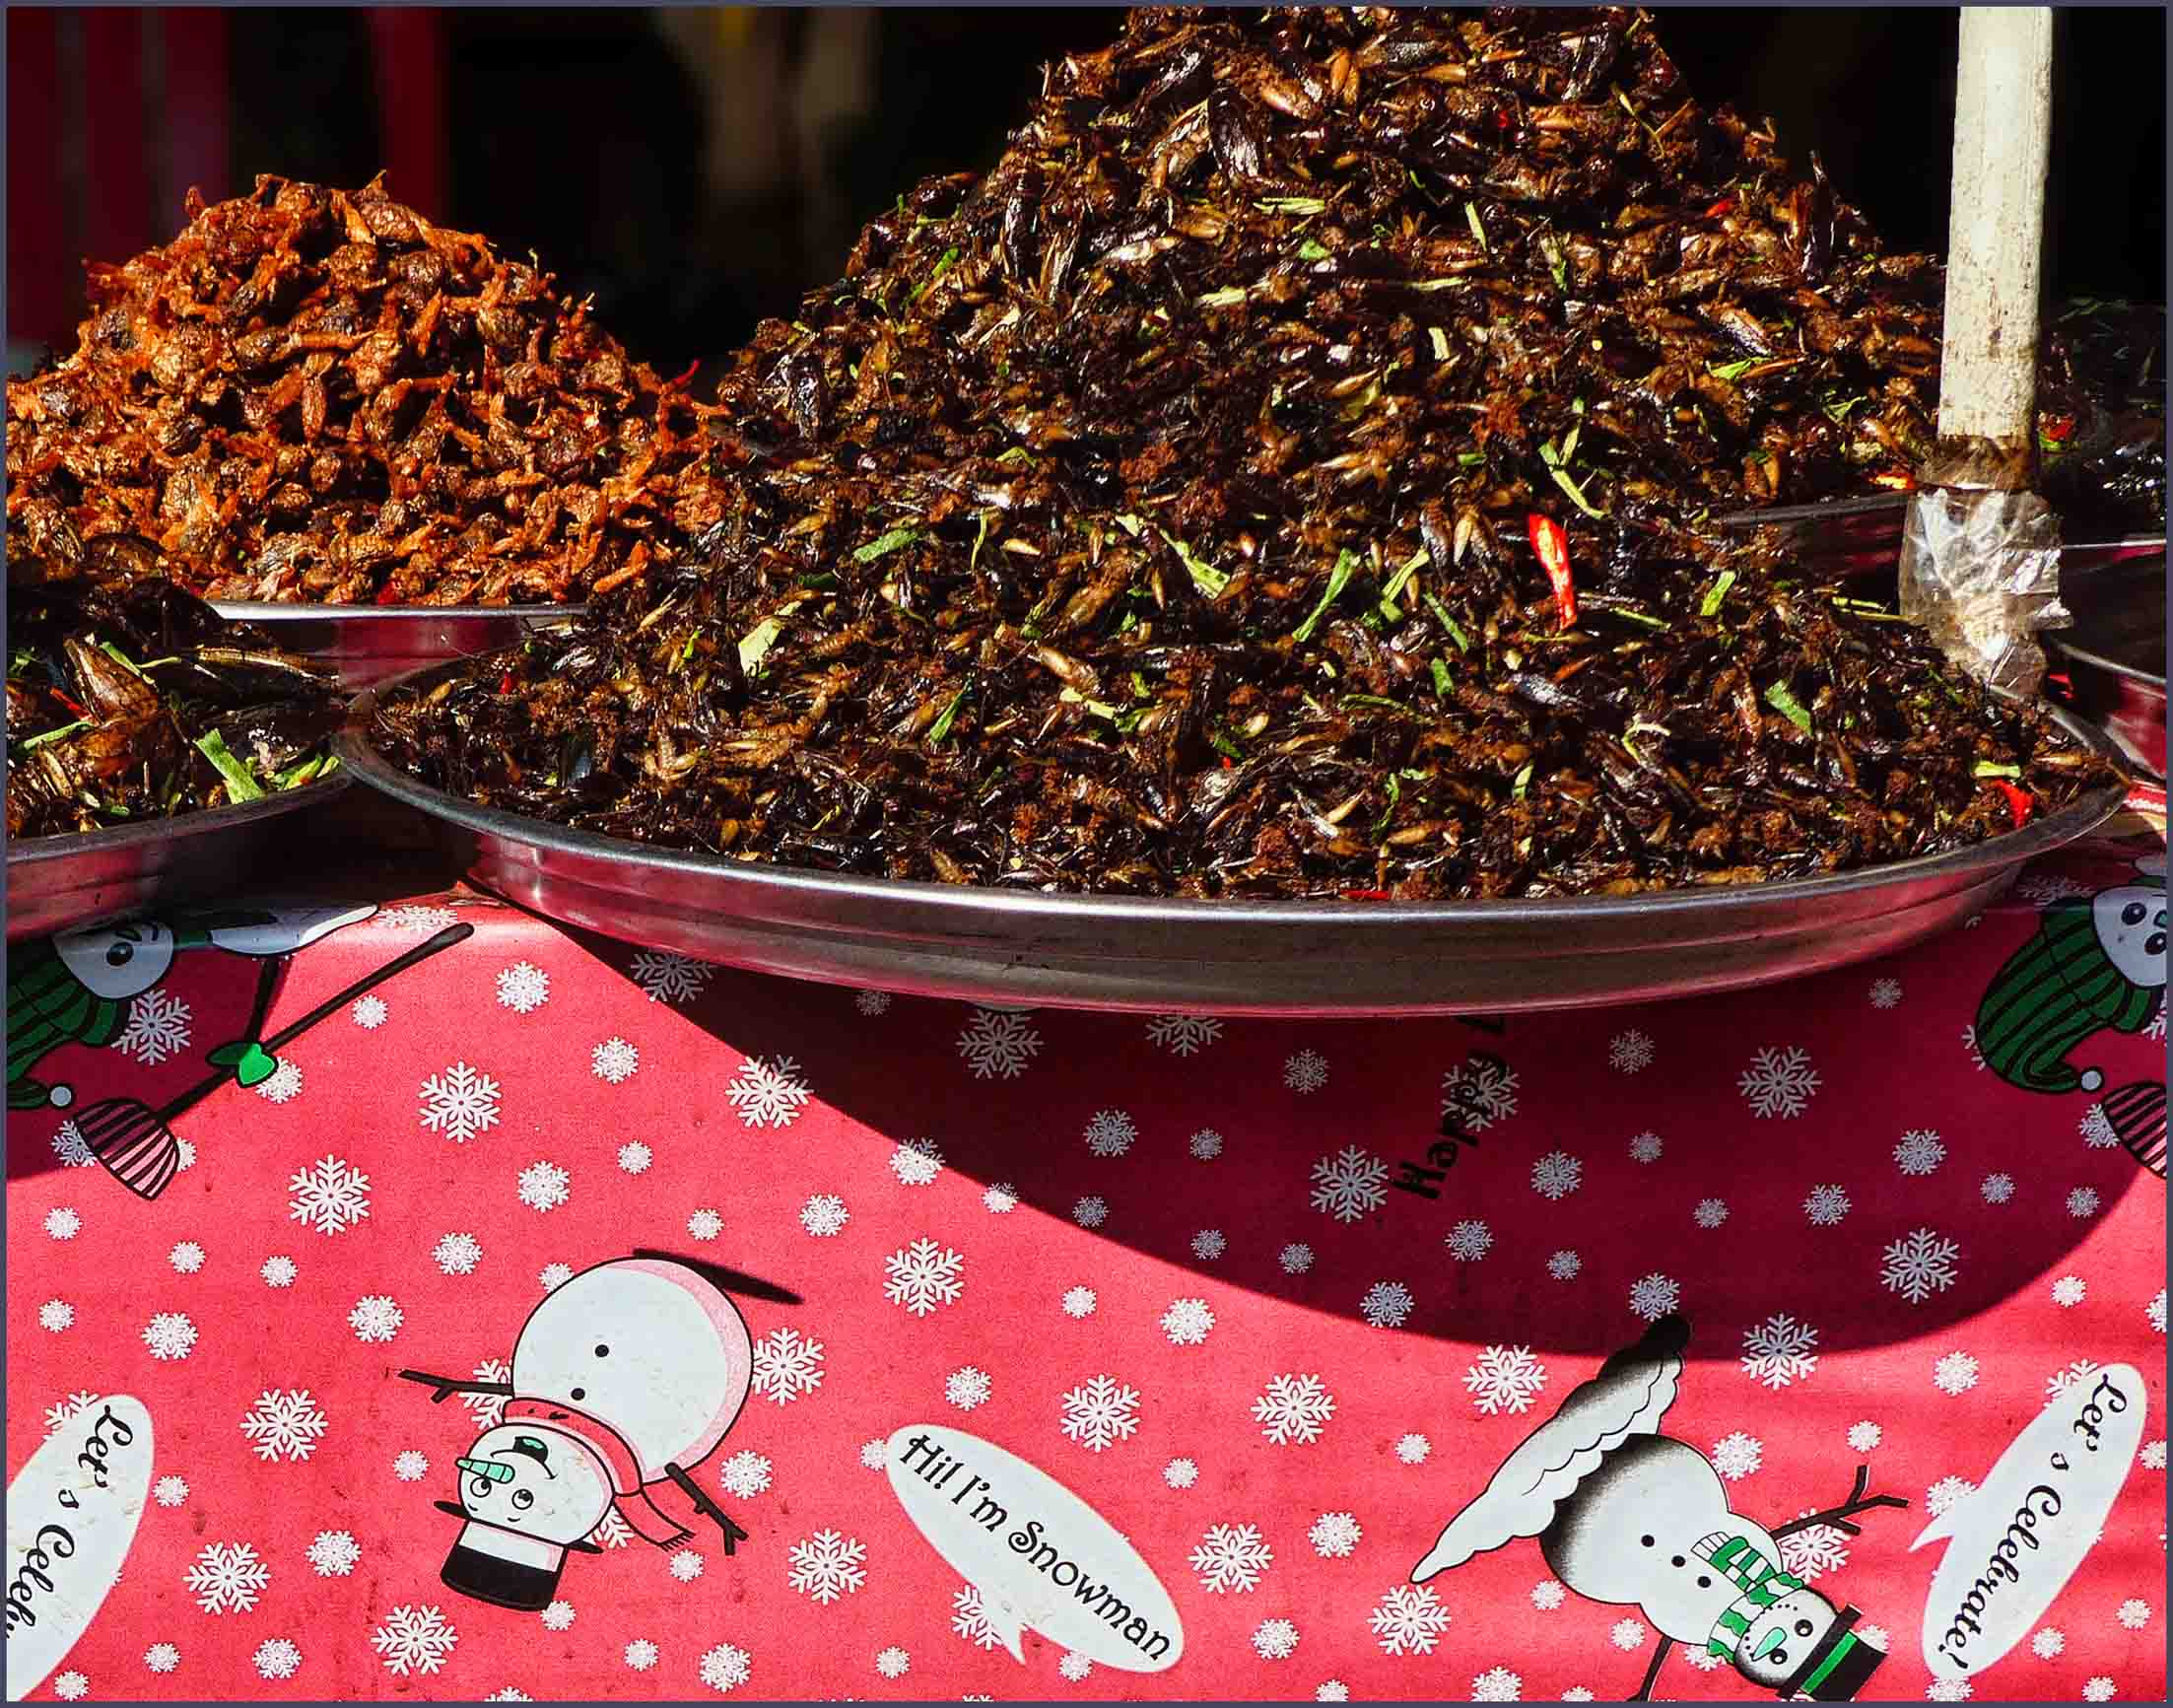 Plates of fried insects on a Christmas table cloth